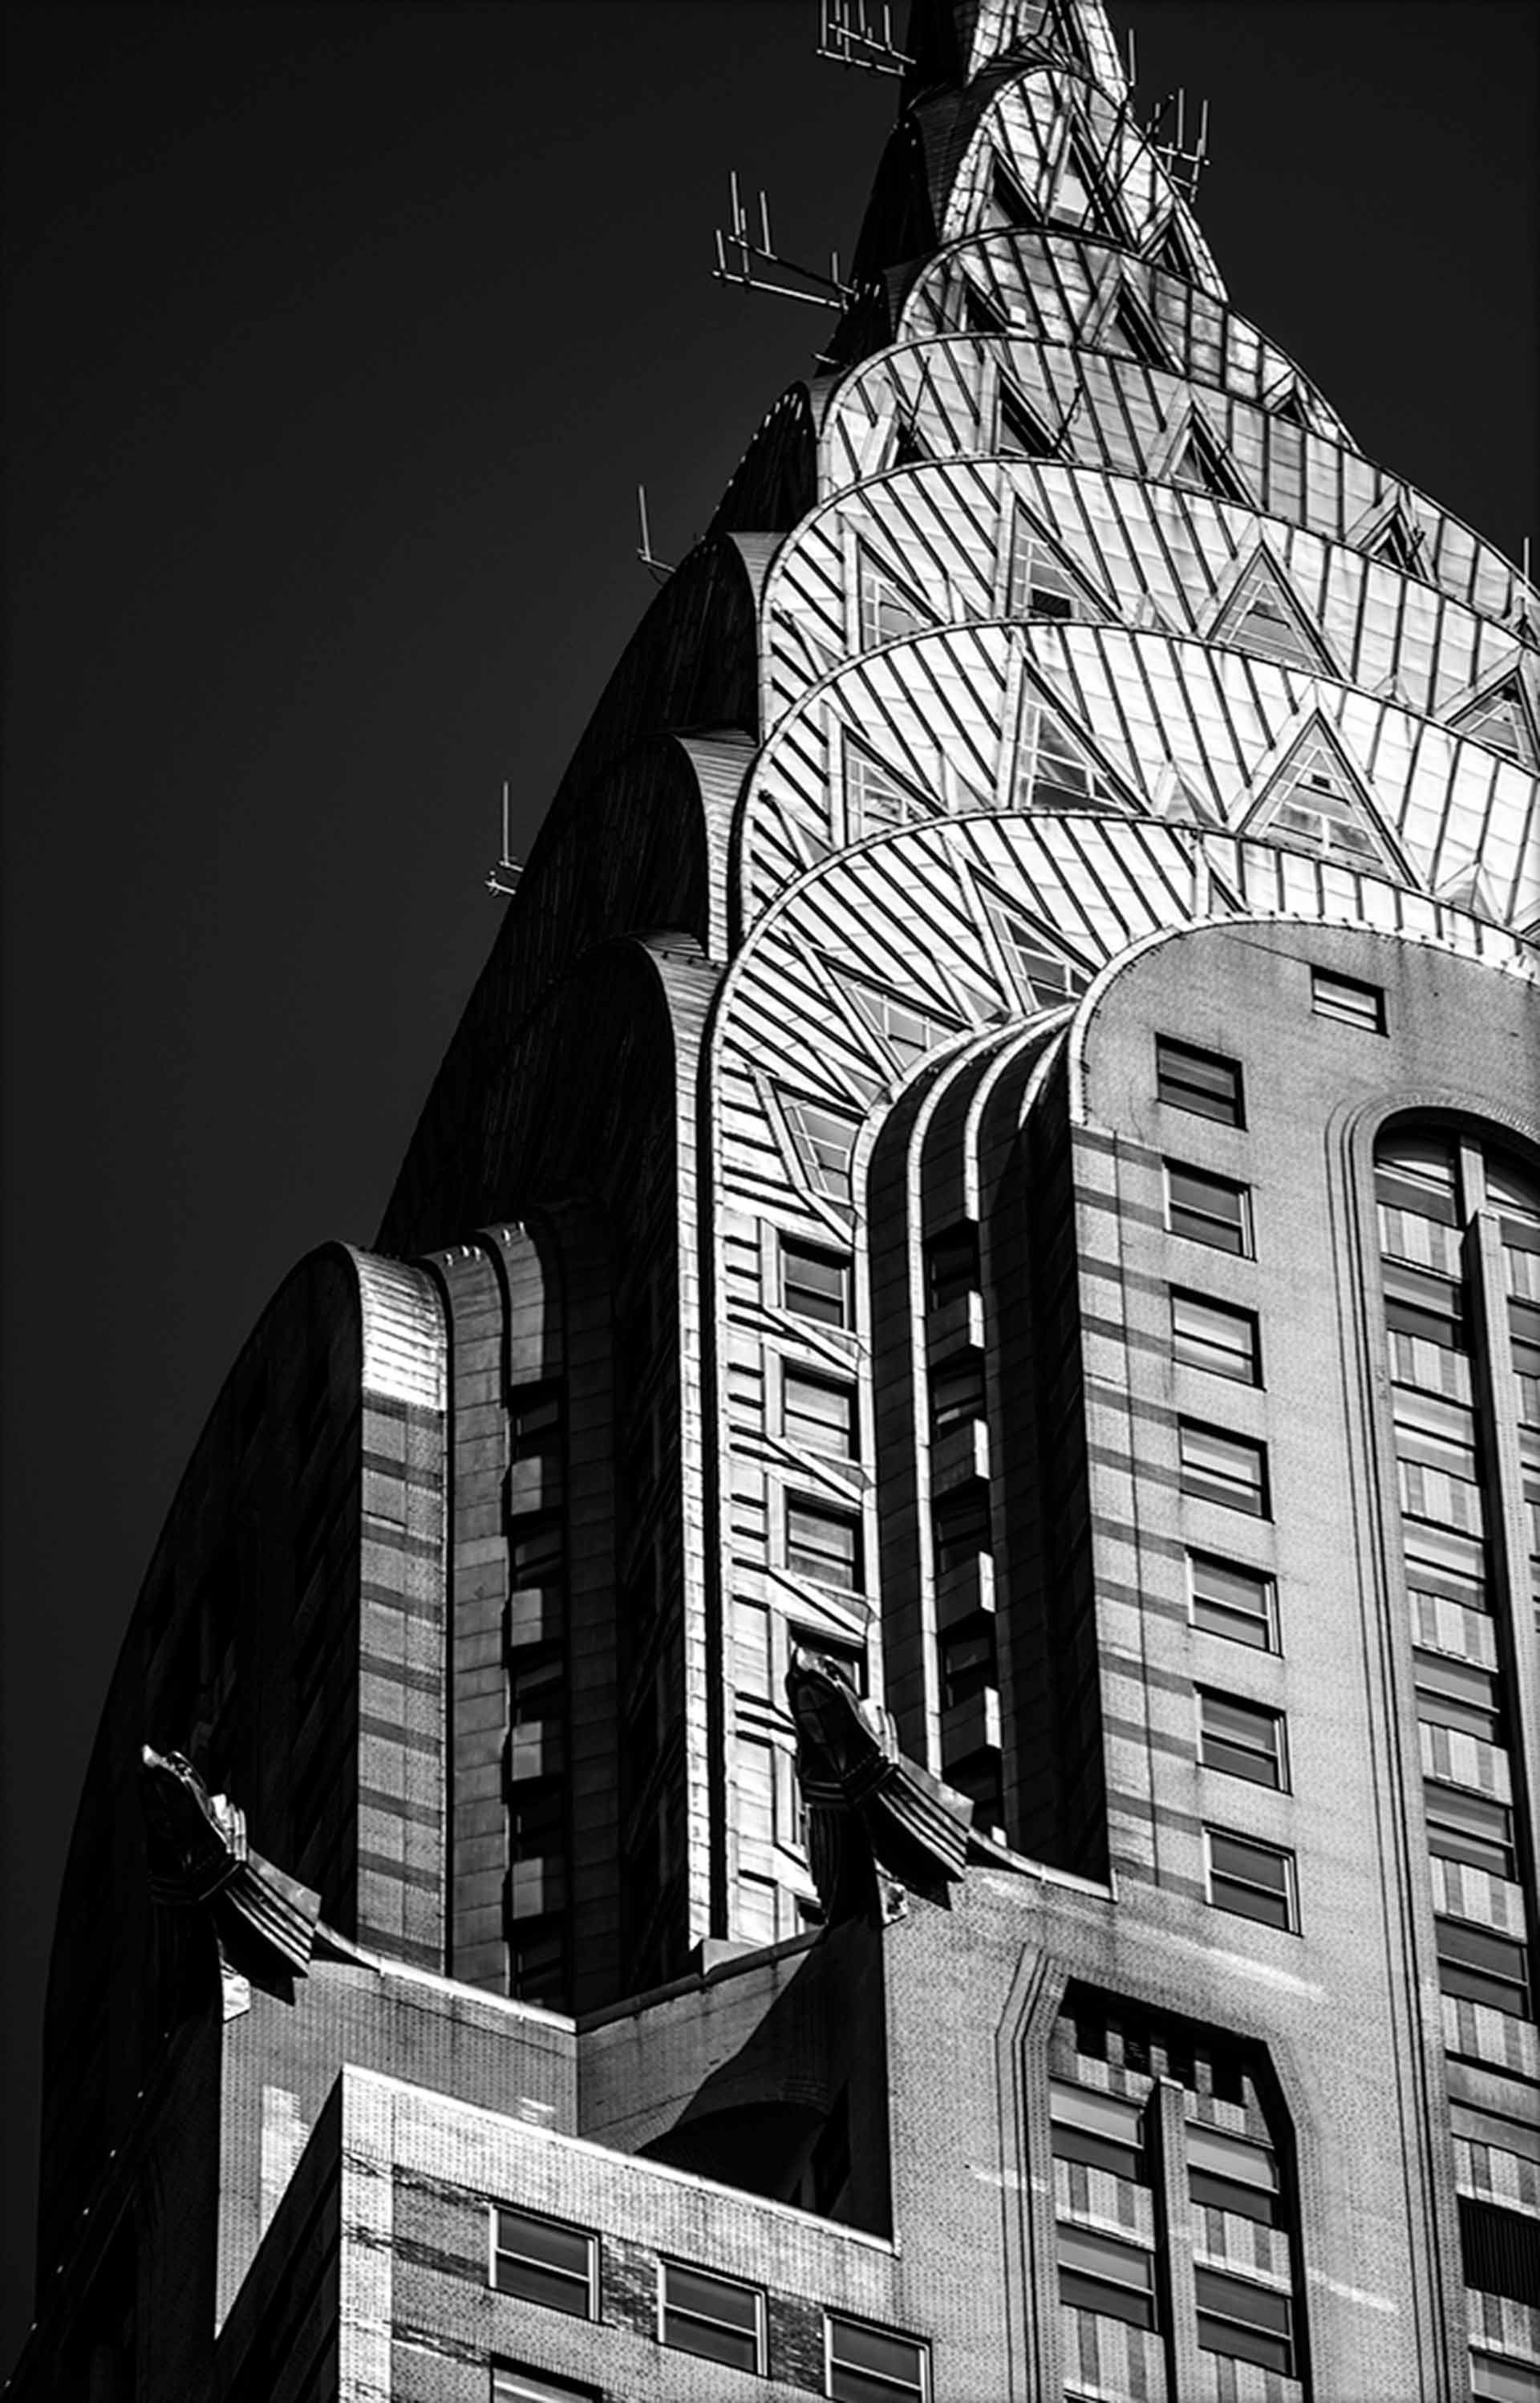 STEFANO ZARDINI NEW YORK CITY, Nr. 2036 The steel eagles of the Chrysler building cm. 66,7 x 100 image, Dibond mount, framed Edition 1/30